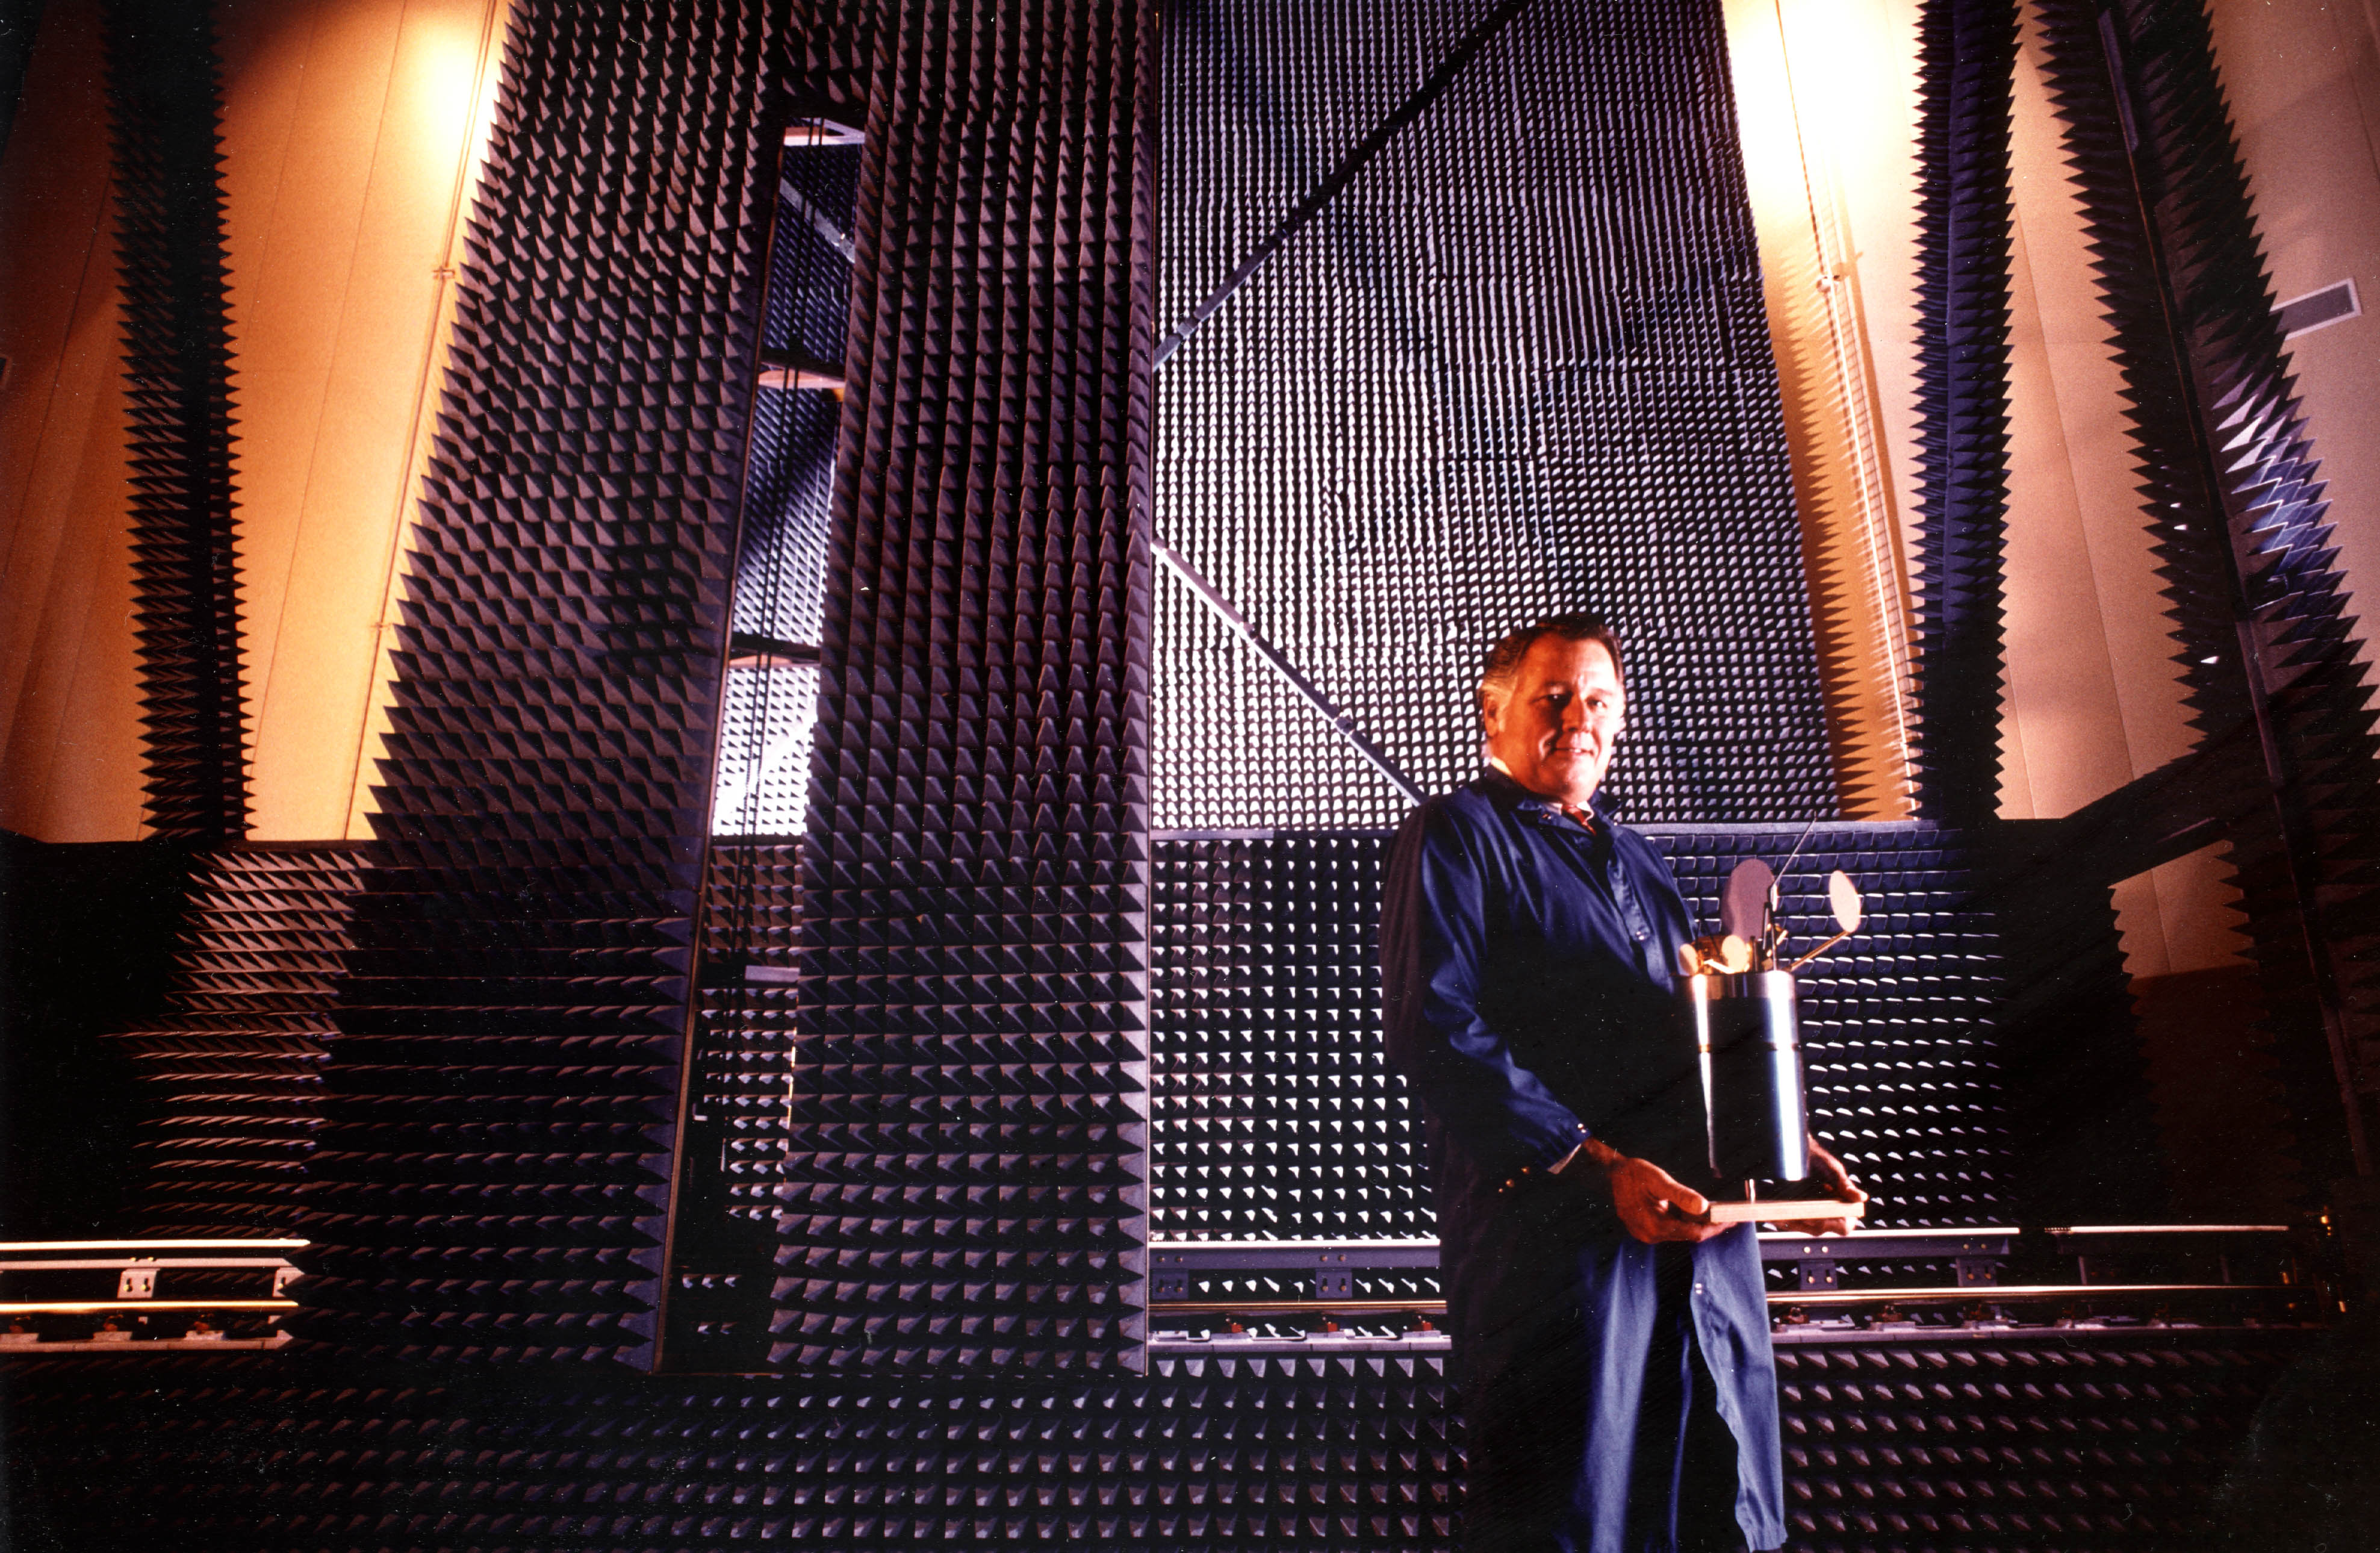 In the Anechoic Chamber With Intelsat VI Model